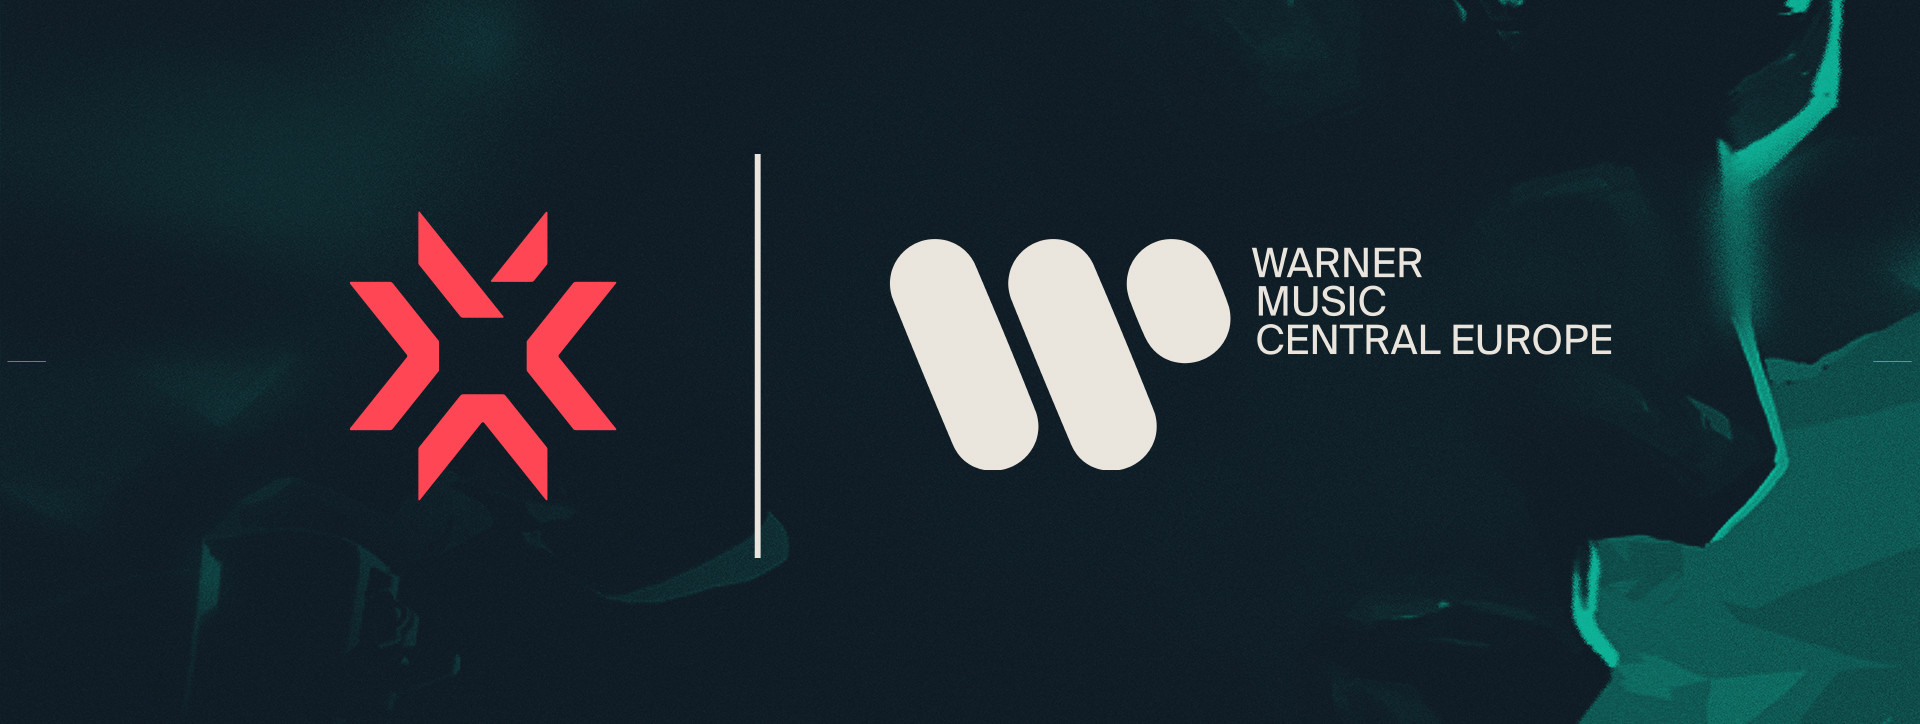 Warner Music to support VCT as official partner